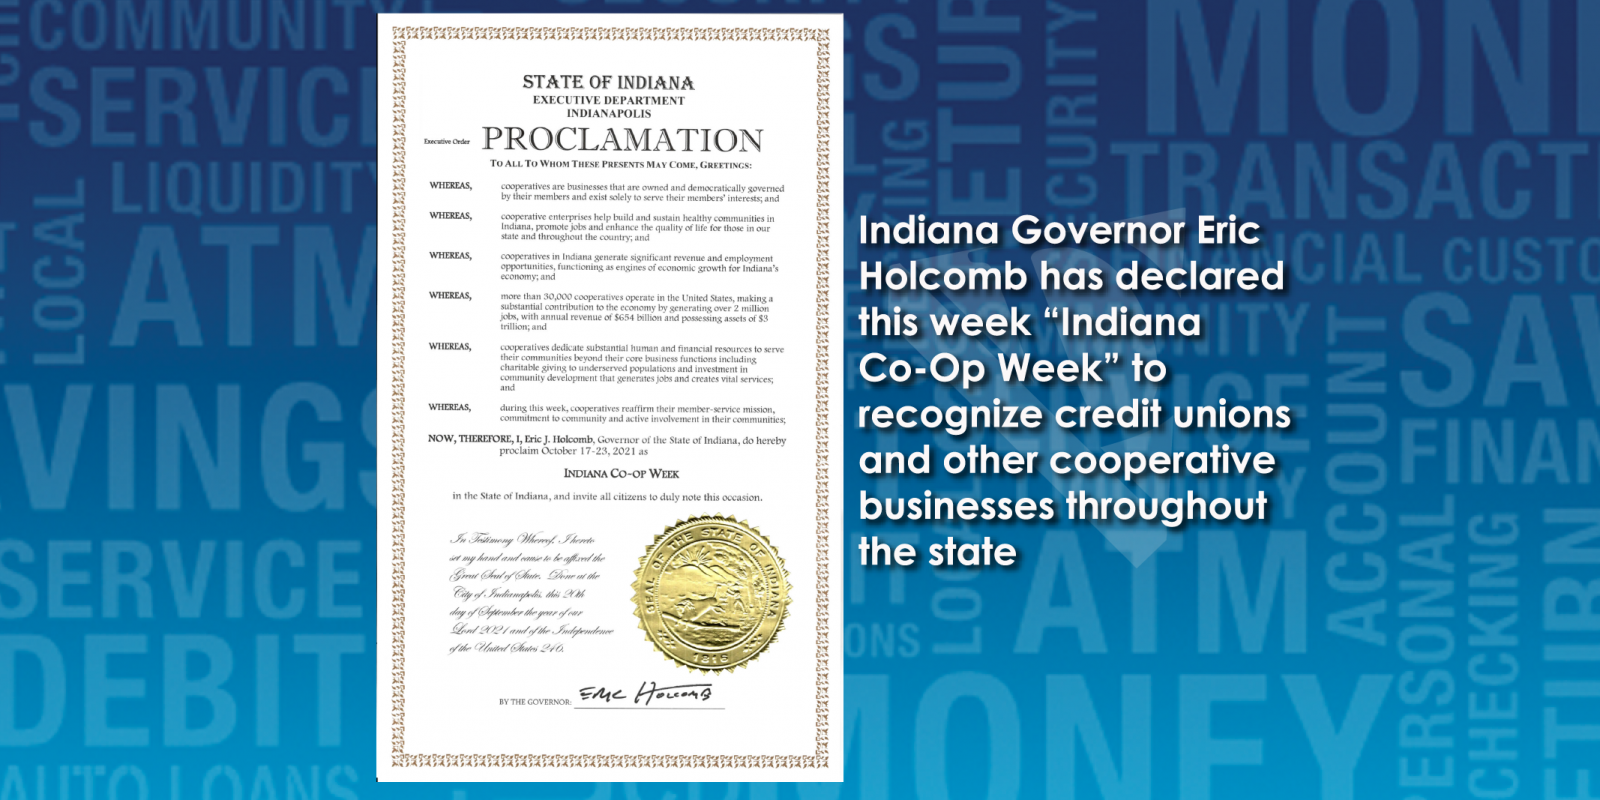 International Credit Union Day and Indiana Co-Op Week